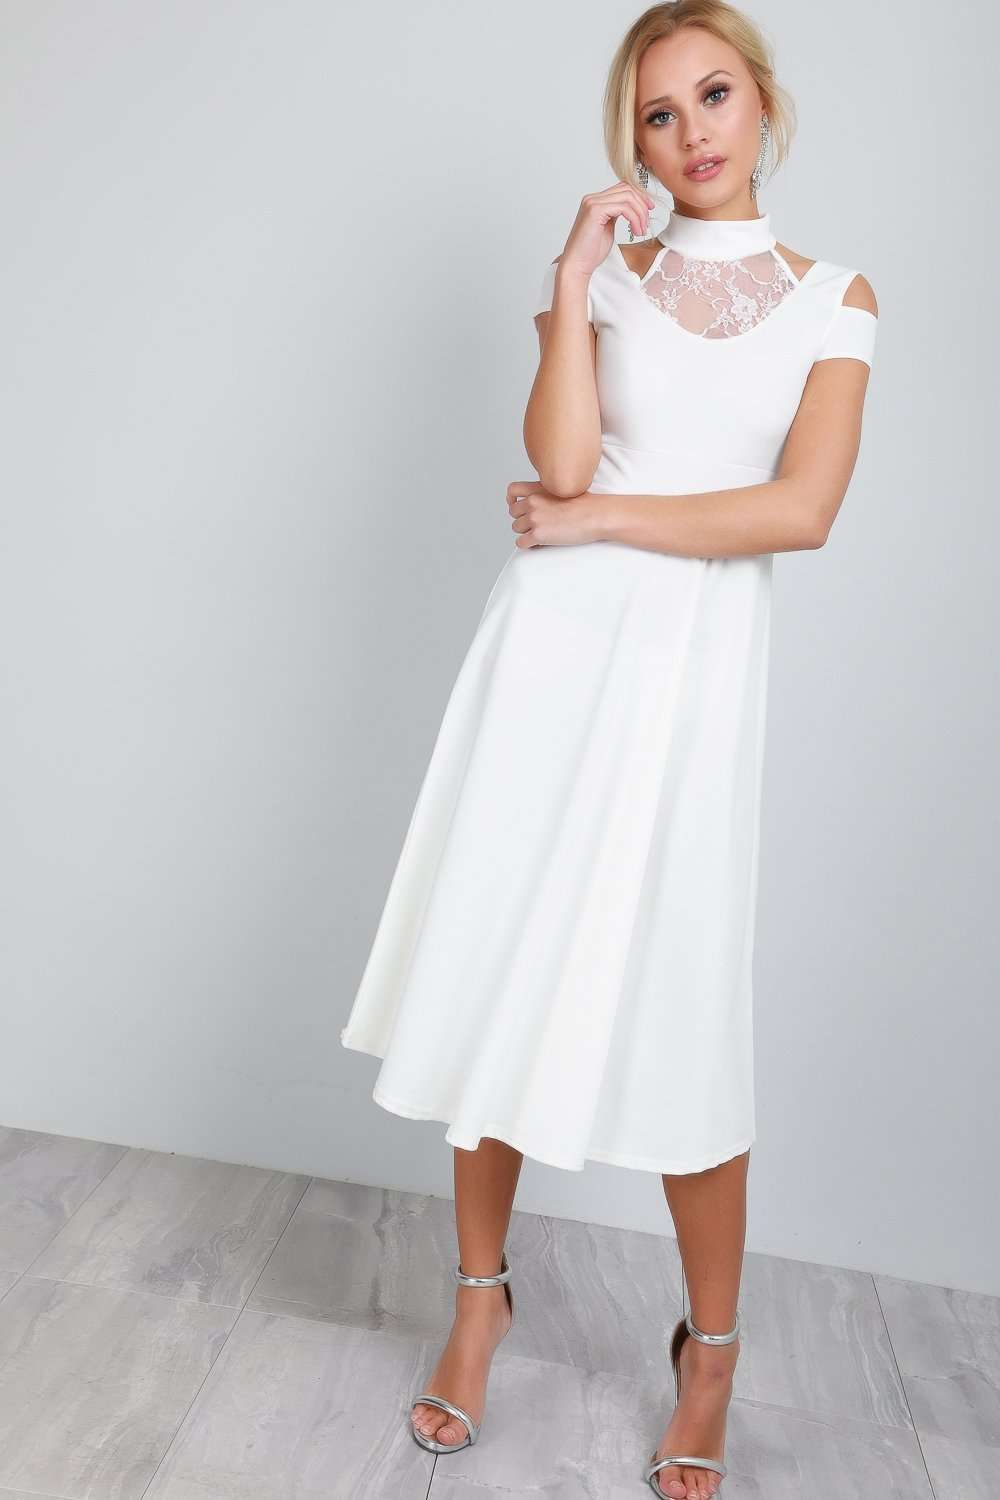 Millie High Neck Cold Shoulder Midi Swing Dress - bejealous-com